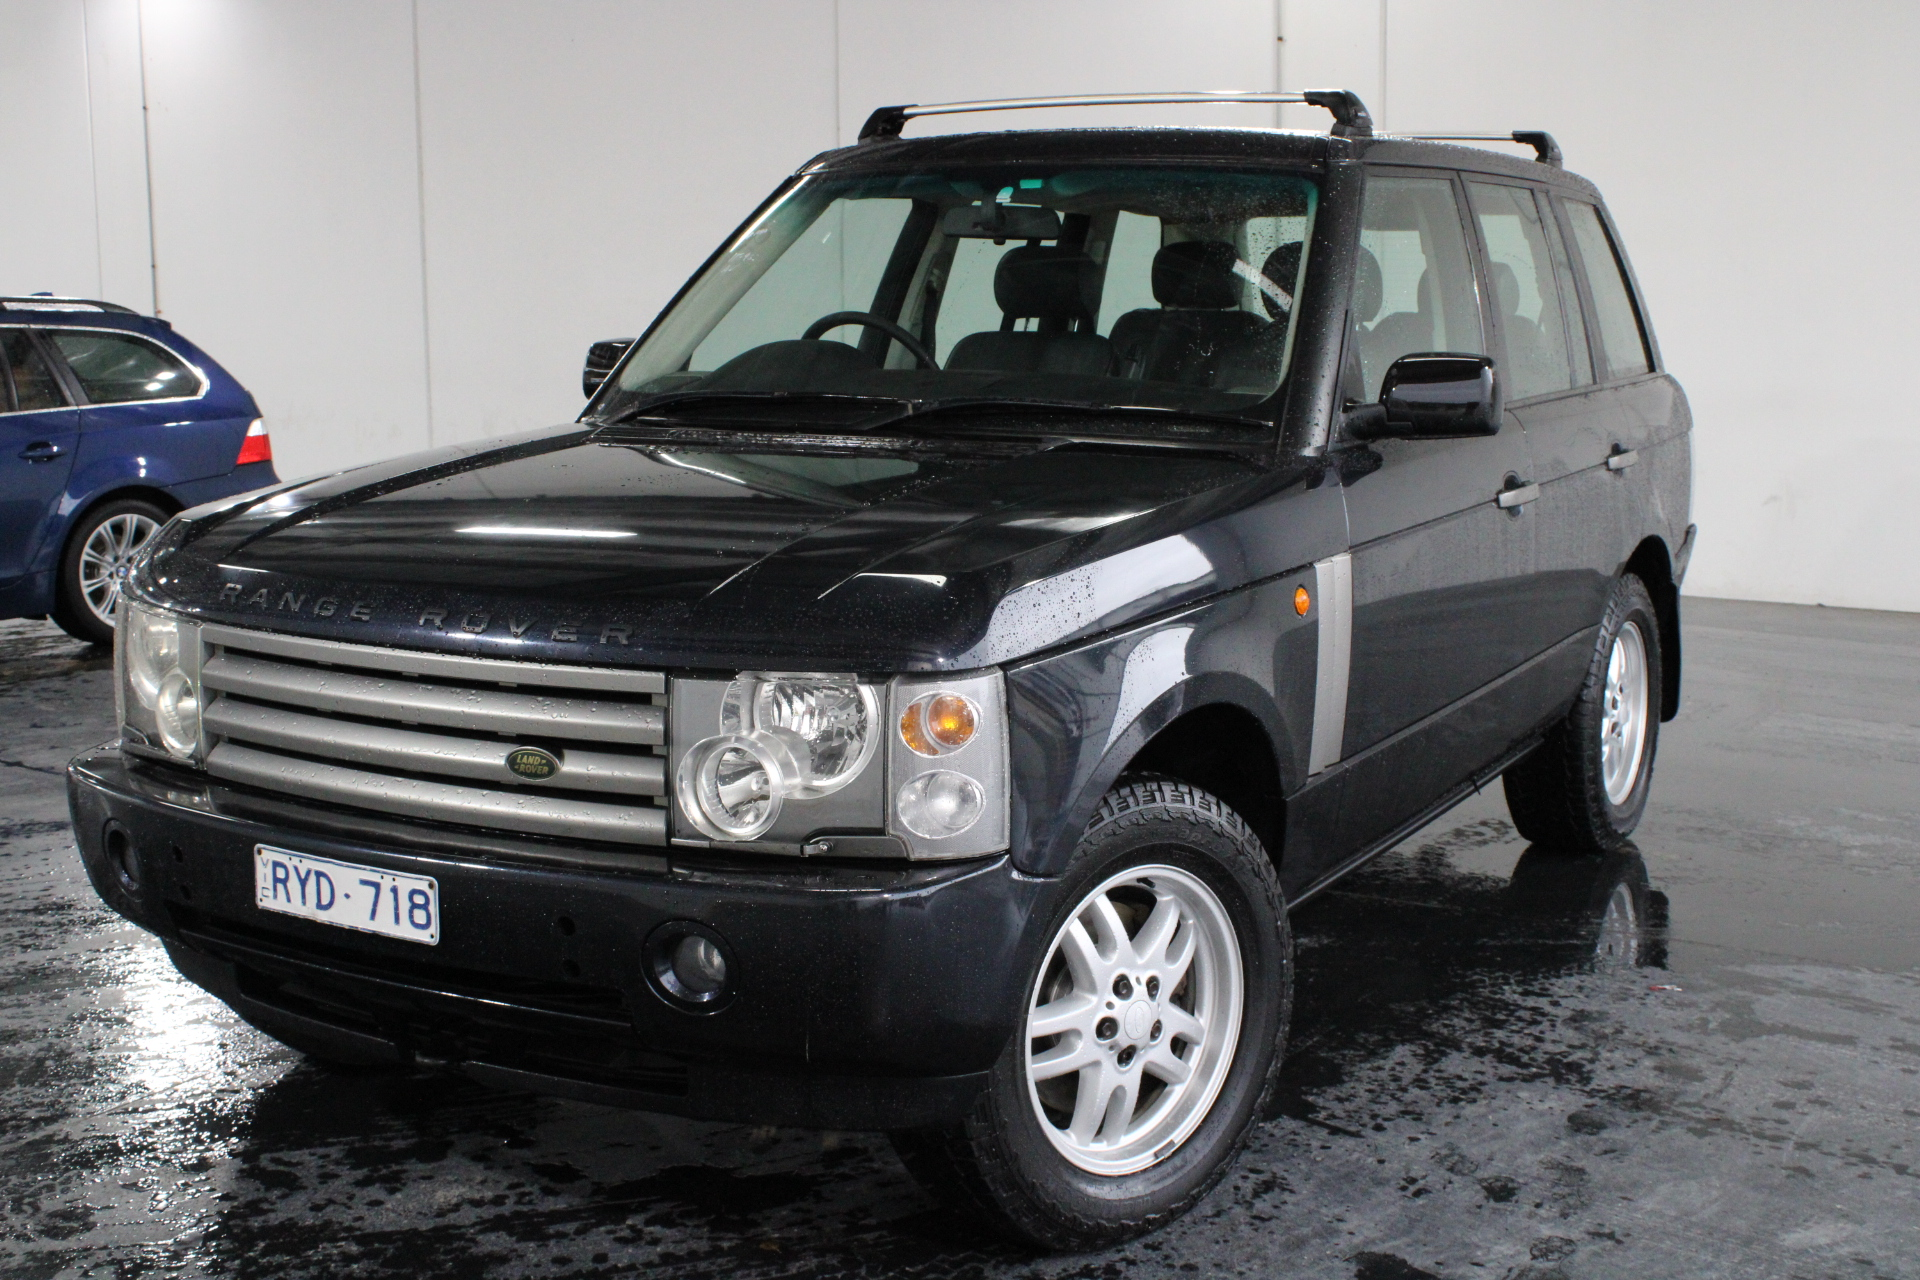 2002 Land Rover Range Rover HSE Turbo Diesel Automatic Wagon